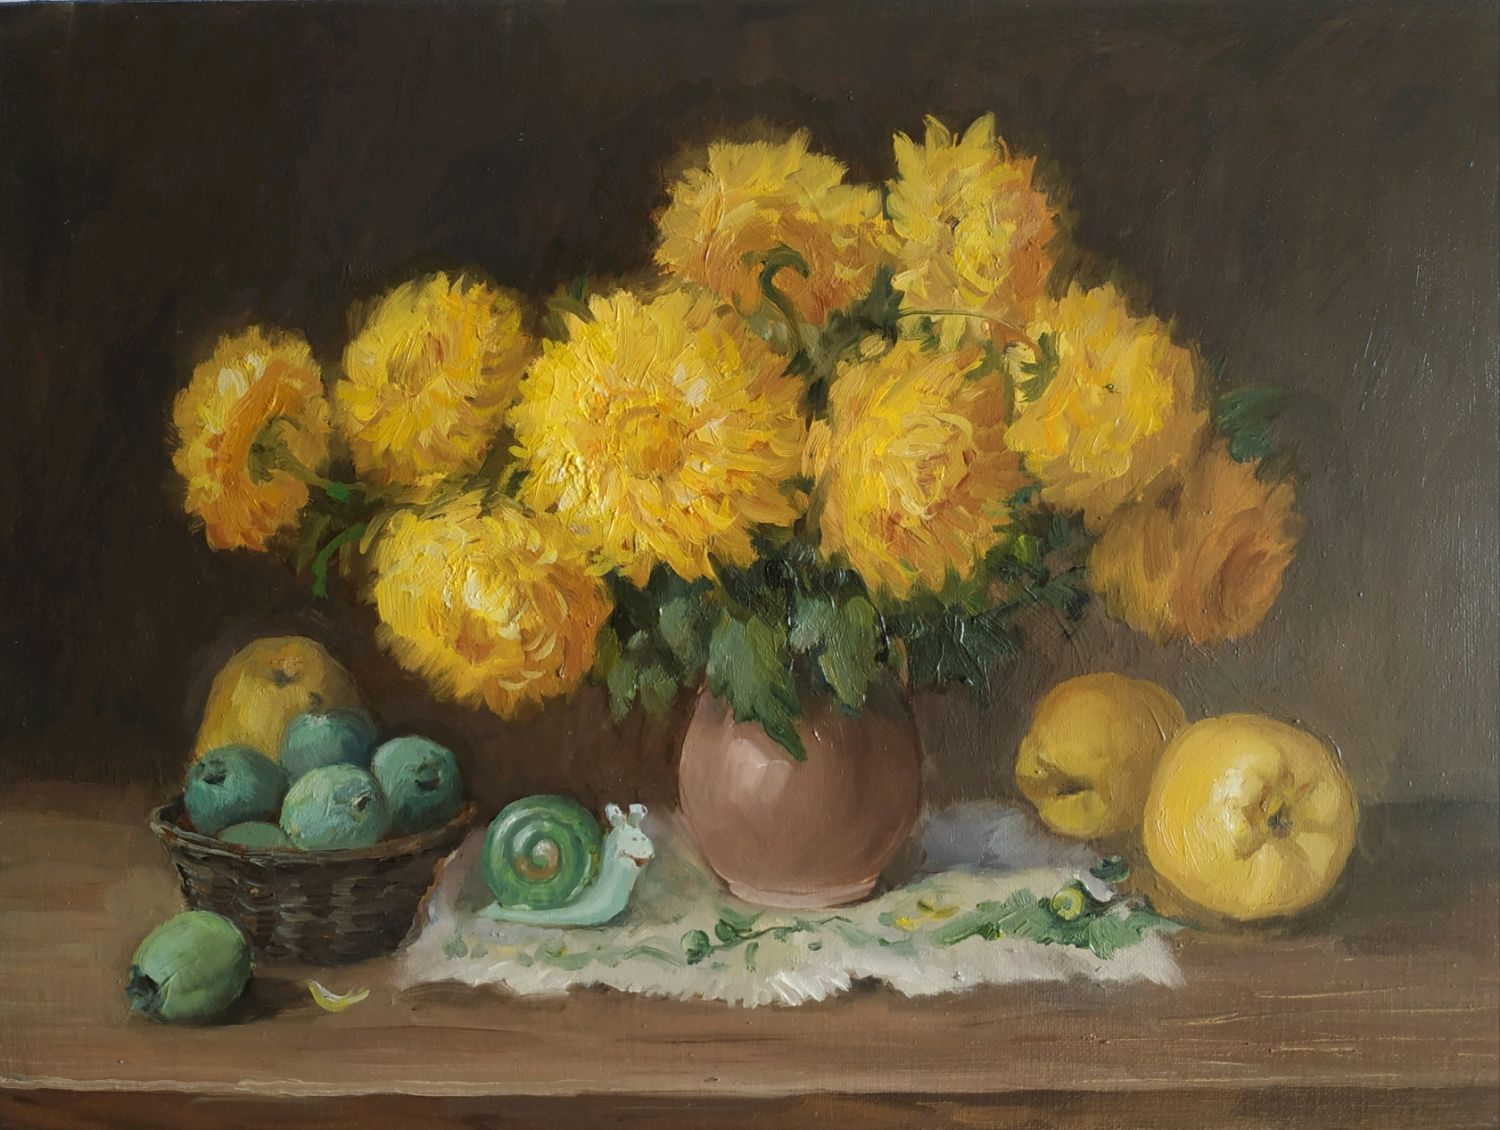 Bouquet of chrysanthemums, Pictures, Moscow,  Фото №1